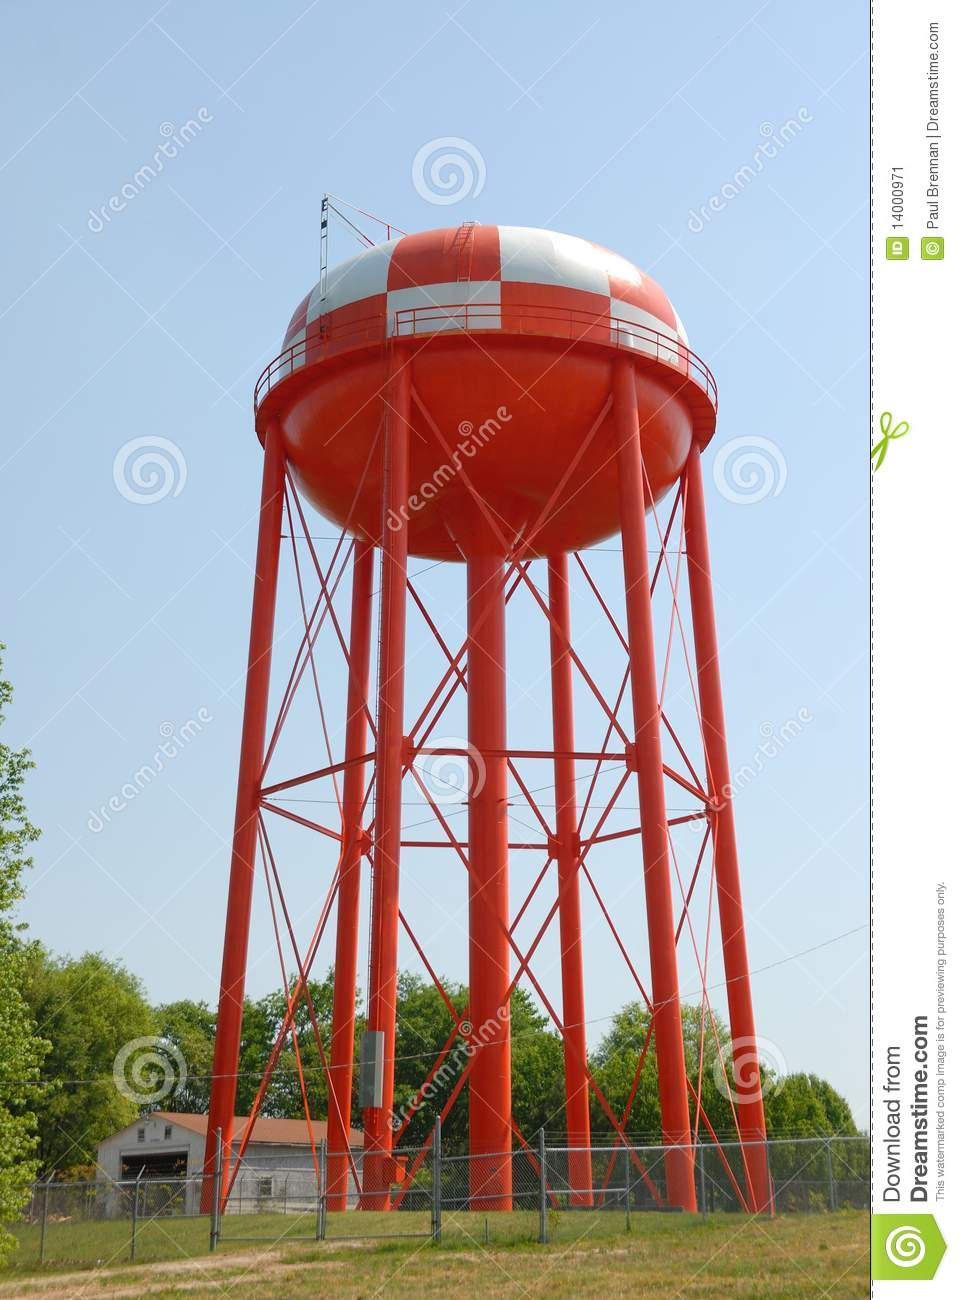 Red and White Water Tower